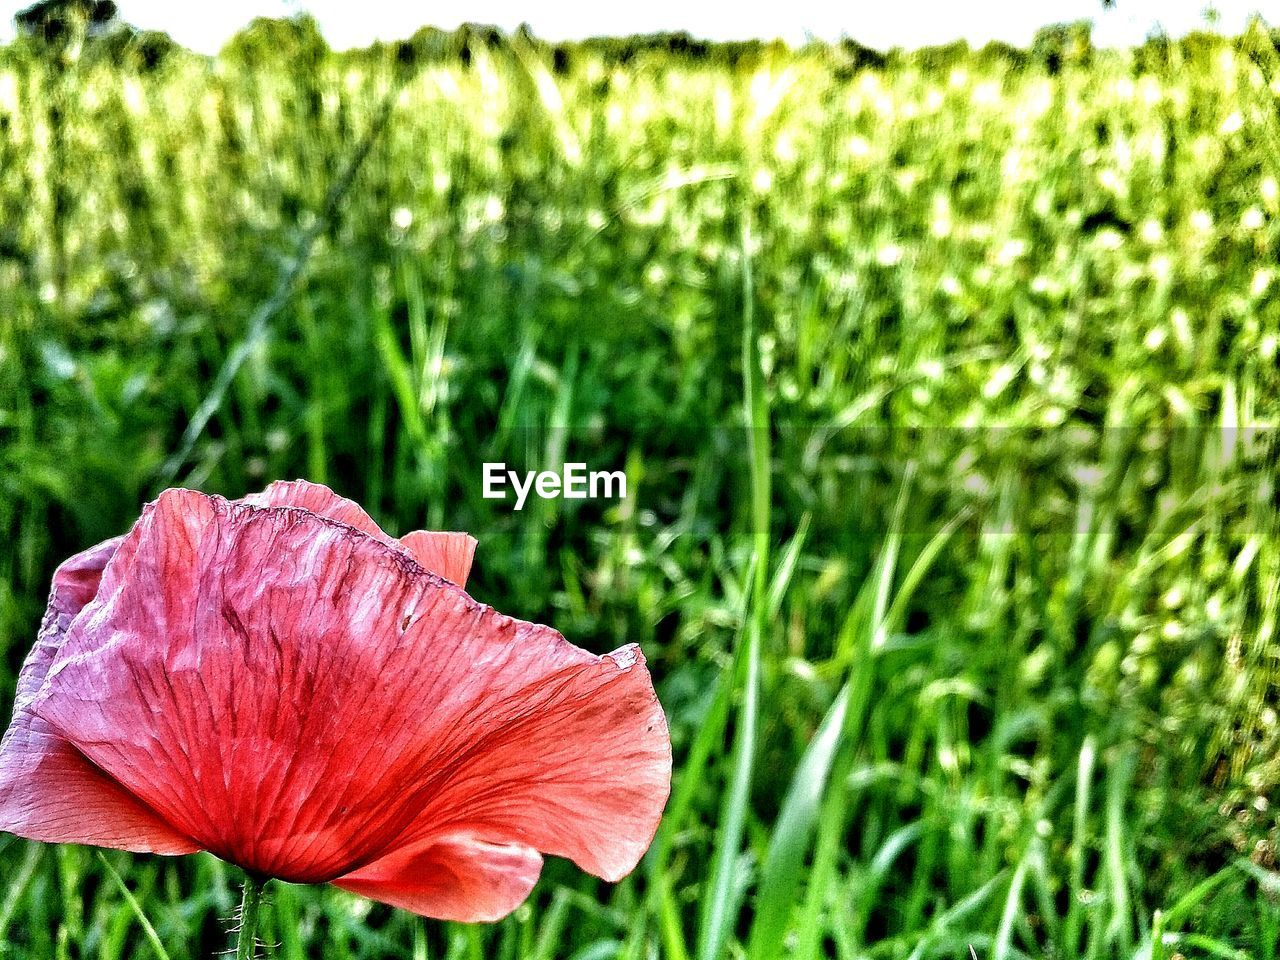 growth, plant, nature, flower, grass, green color, no people, beauty in nature, petal, field, fragility, outdoors, day, close-up, flower head, focus on foreground, freshness, blooming